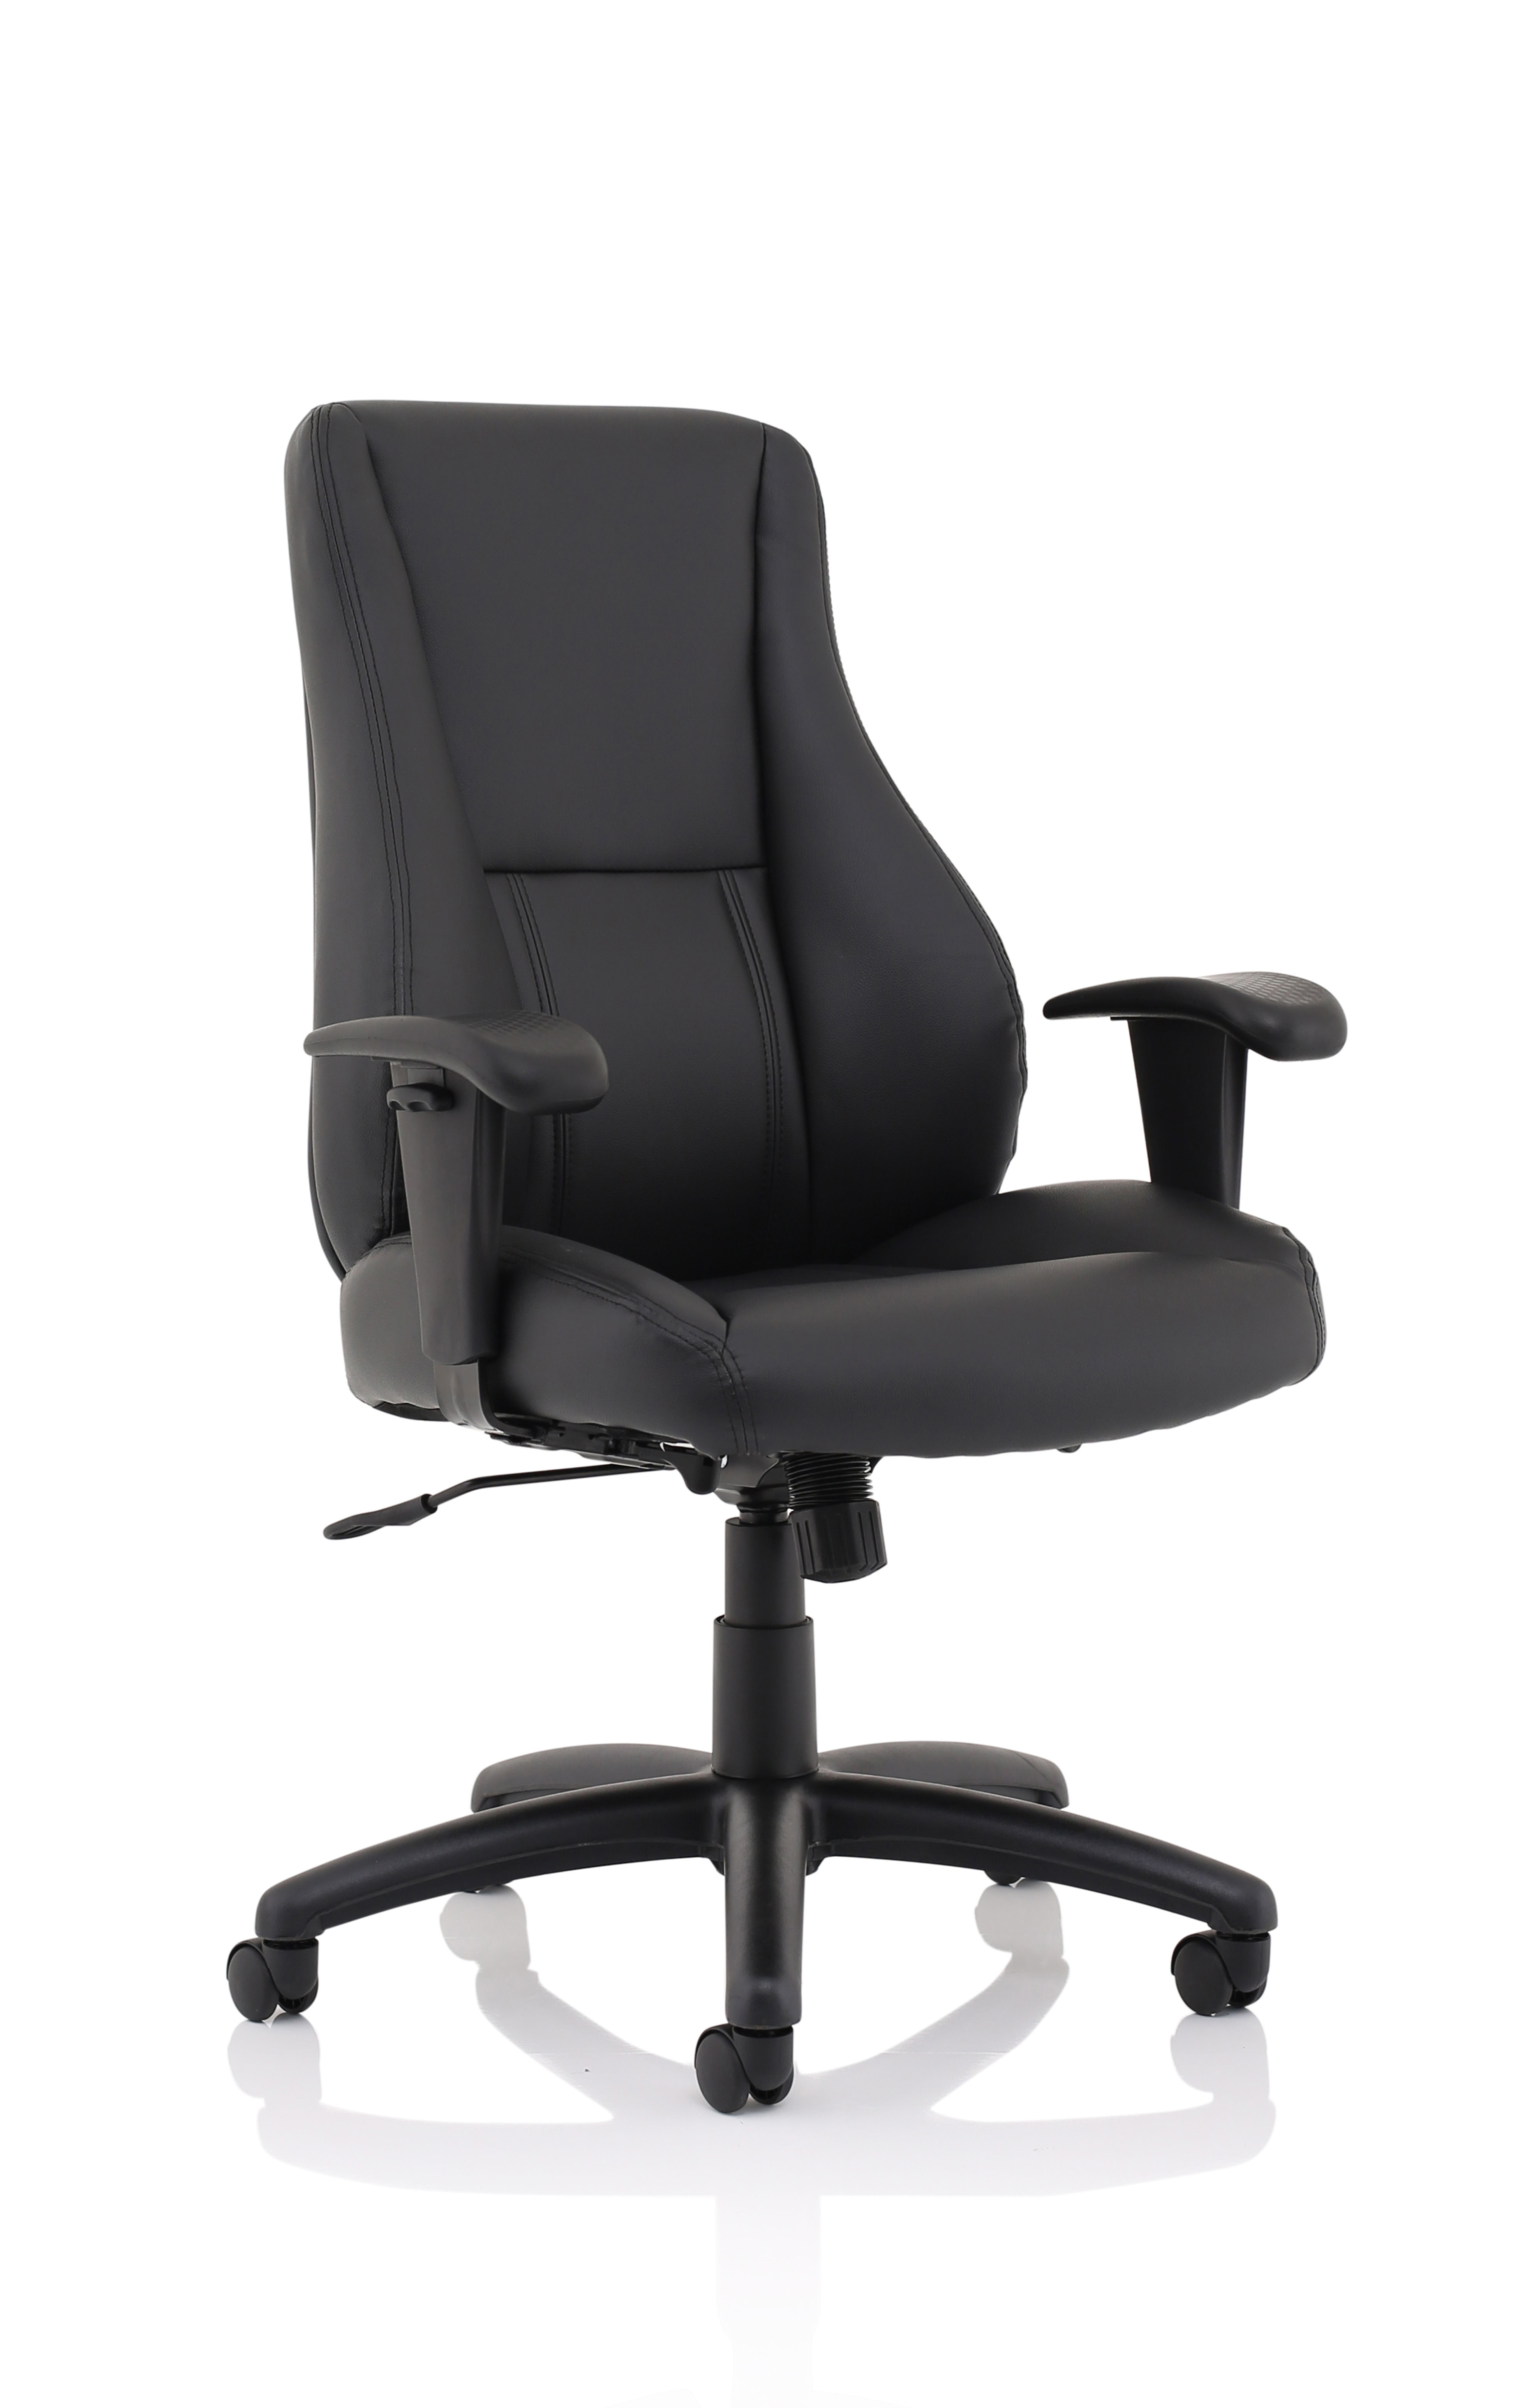 Executive Chairs Winsor Black Leather Chair No Headrest EX000212